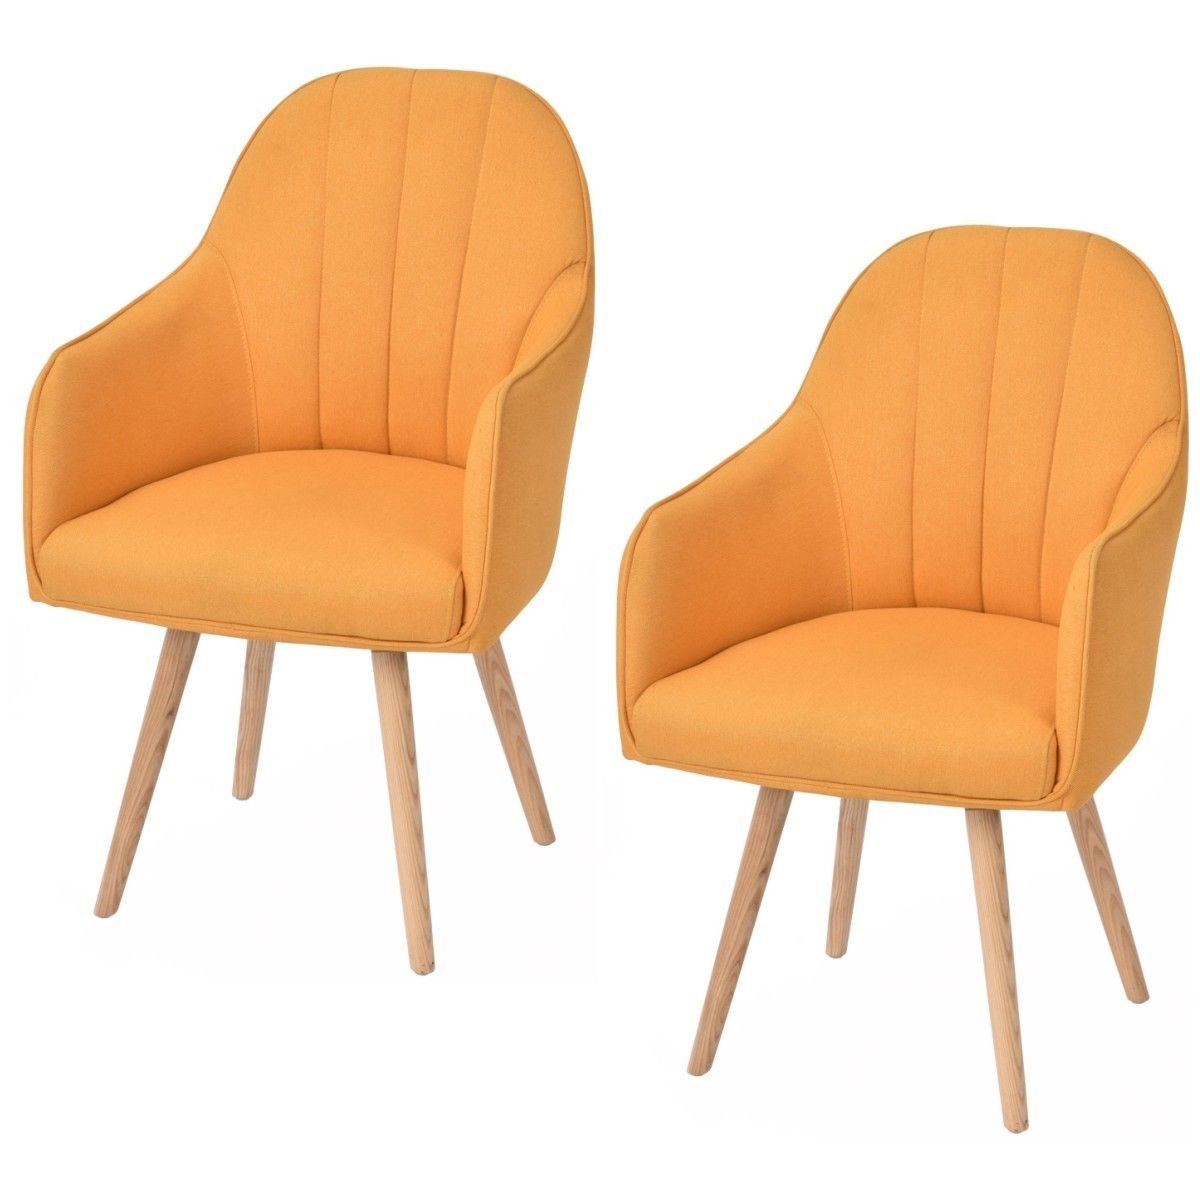 Giantex Set of 2 Accent Dining Chairs Style Arm Chair Modern w/Wood Legs Yellow